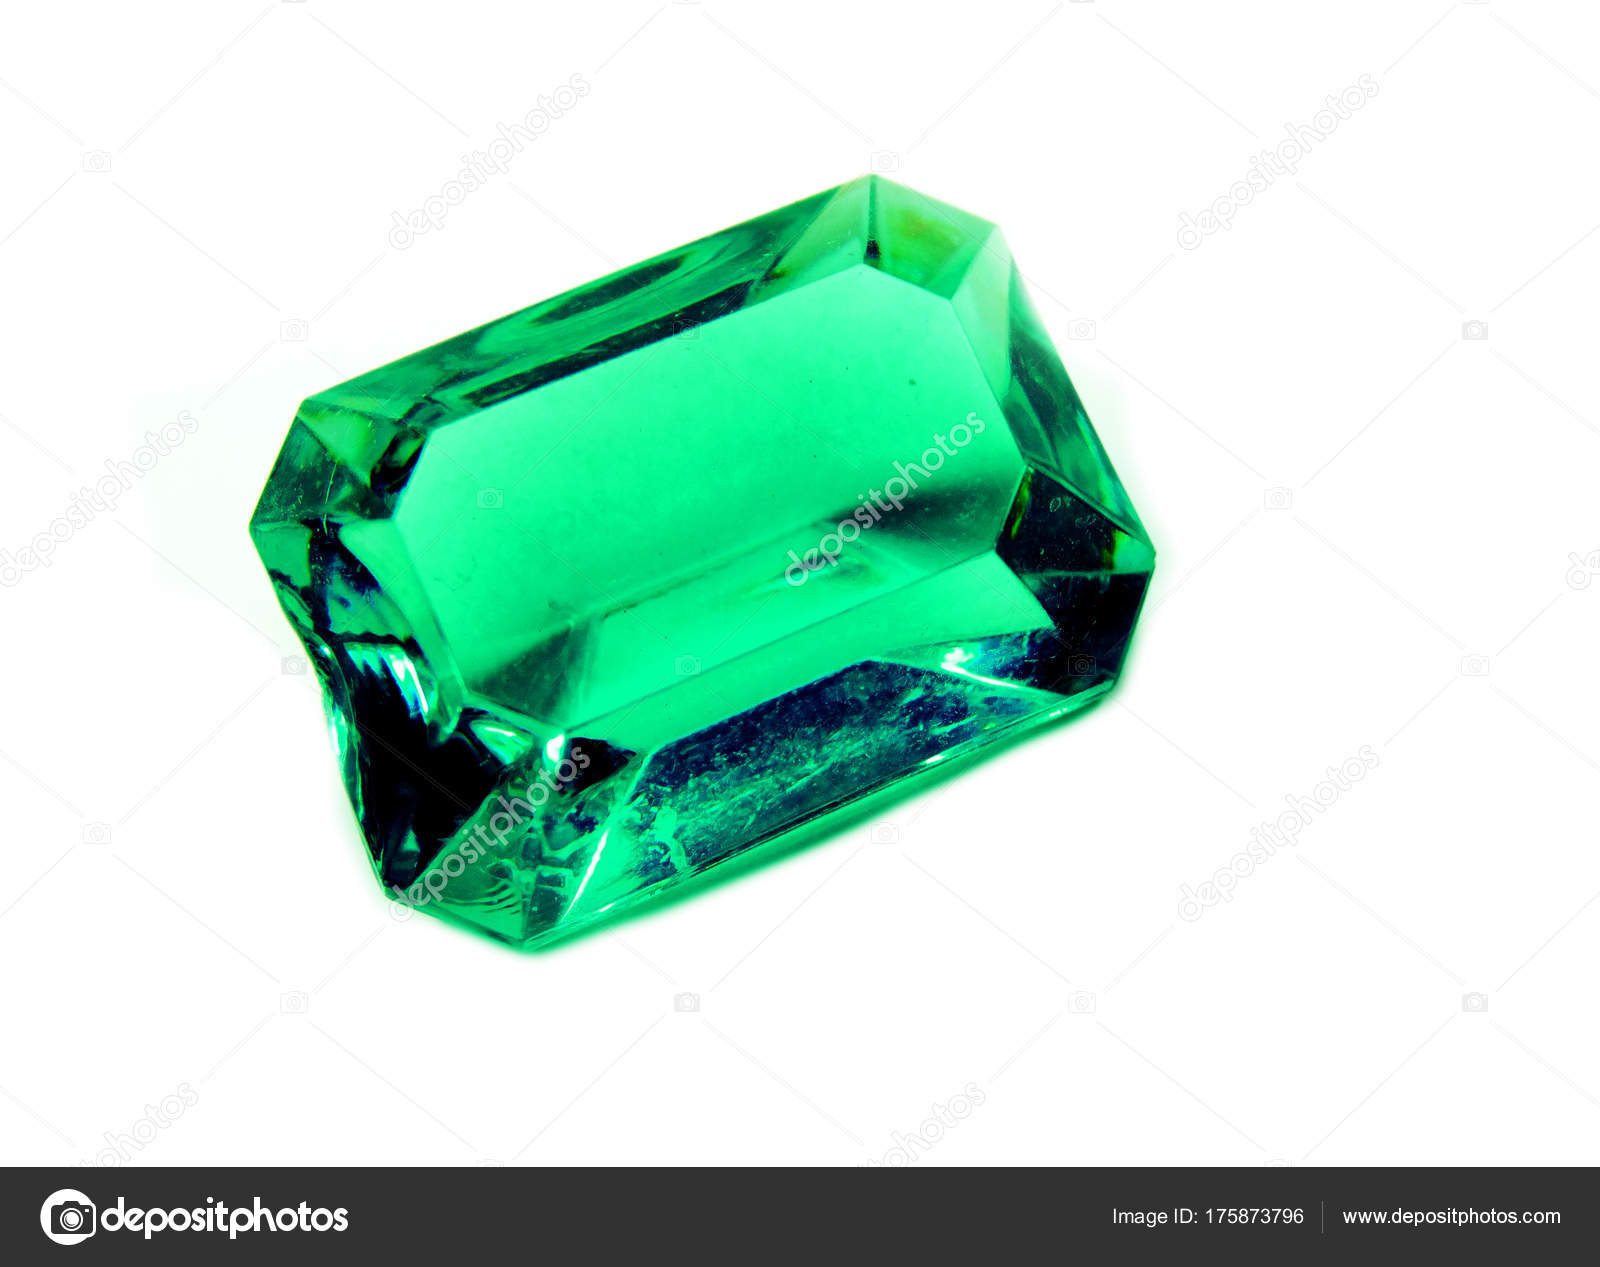 crystals d photo render beautiful polished emerald green stock image gemstones stone illustrationemerald aquamarine illustration digital precious